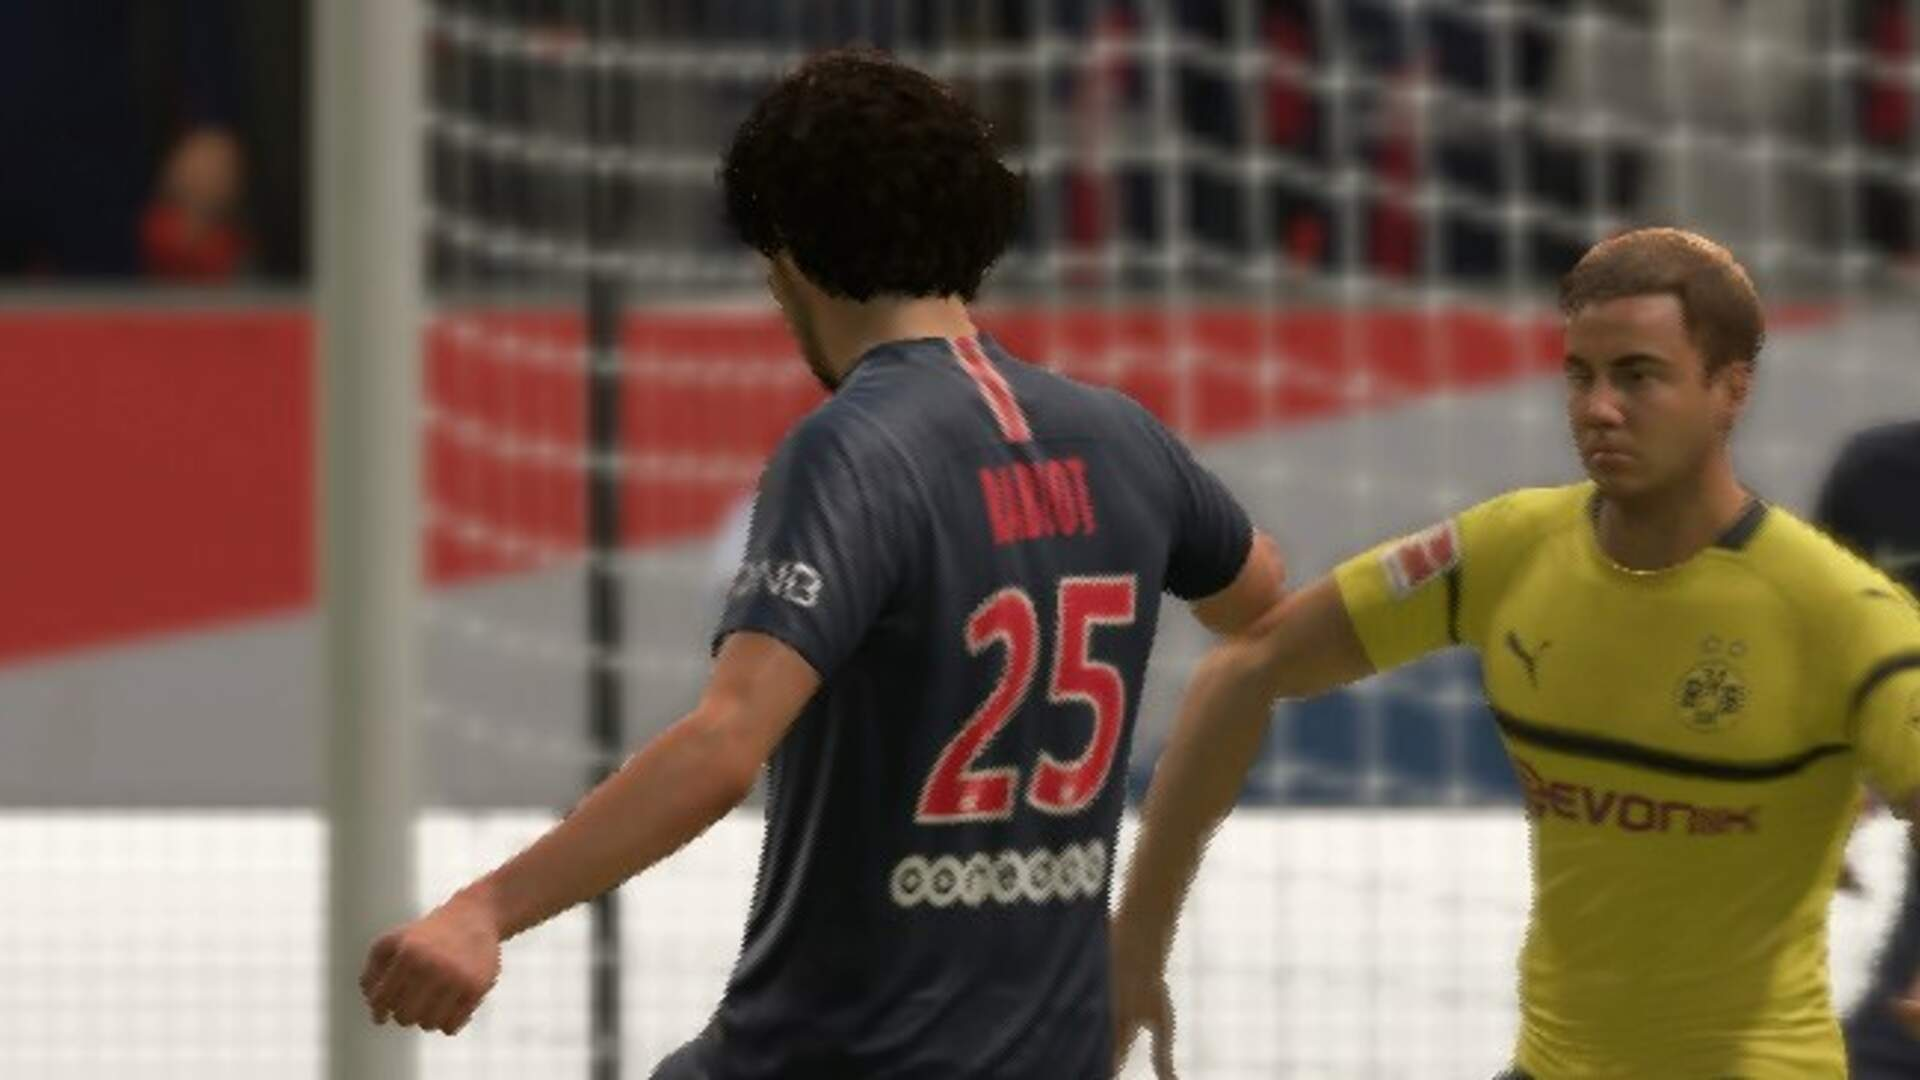 This Incredible FIFA 19 Goal Highlights an Emerging Problem